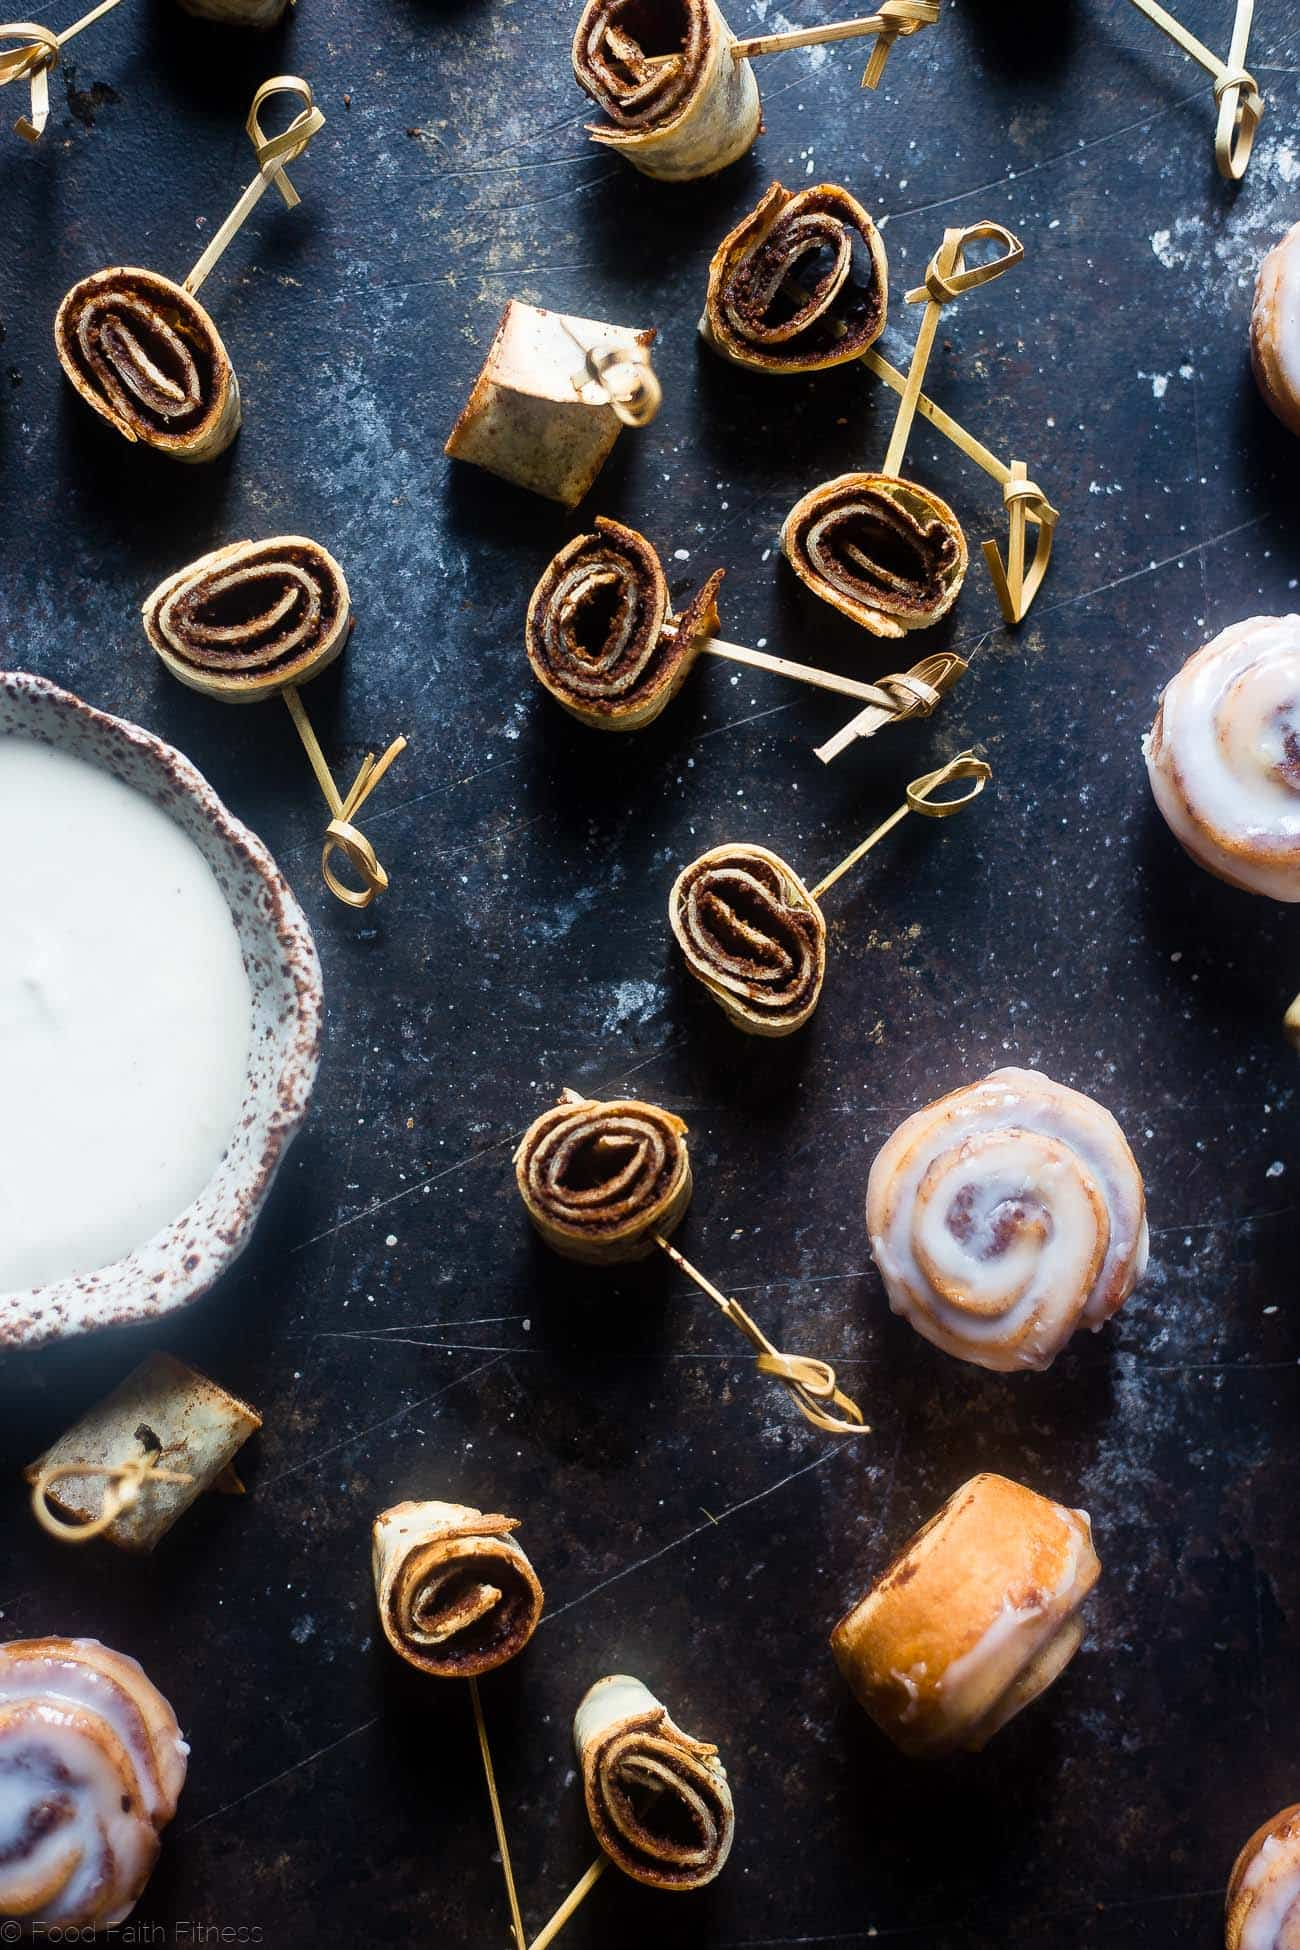 Vegan Cinnamon Roll Pinwheel Bites - This quick and easy bites tastes like a warm, ooey-gooey cinnamon roll, but without all the work! They're dairy and gluten free and ready in under 30 mins! | Foodfaithfitness.com | @FoodFaithFit